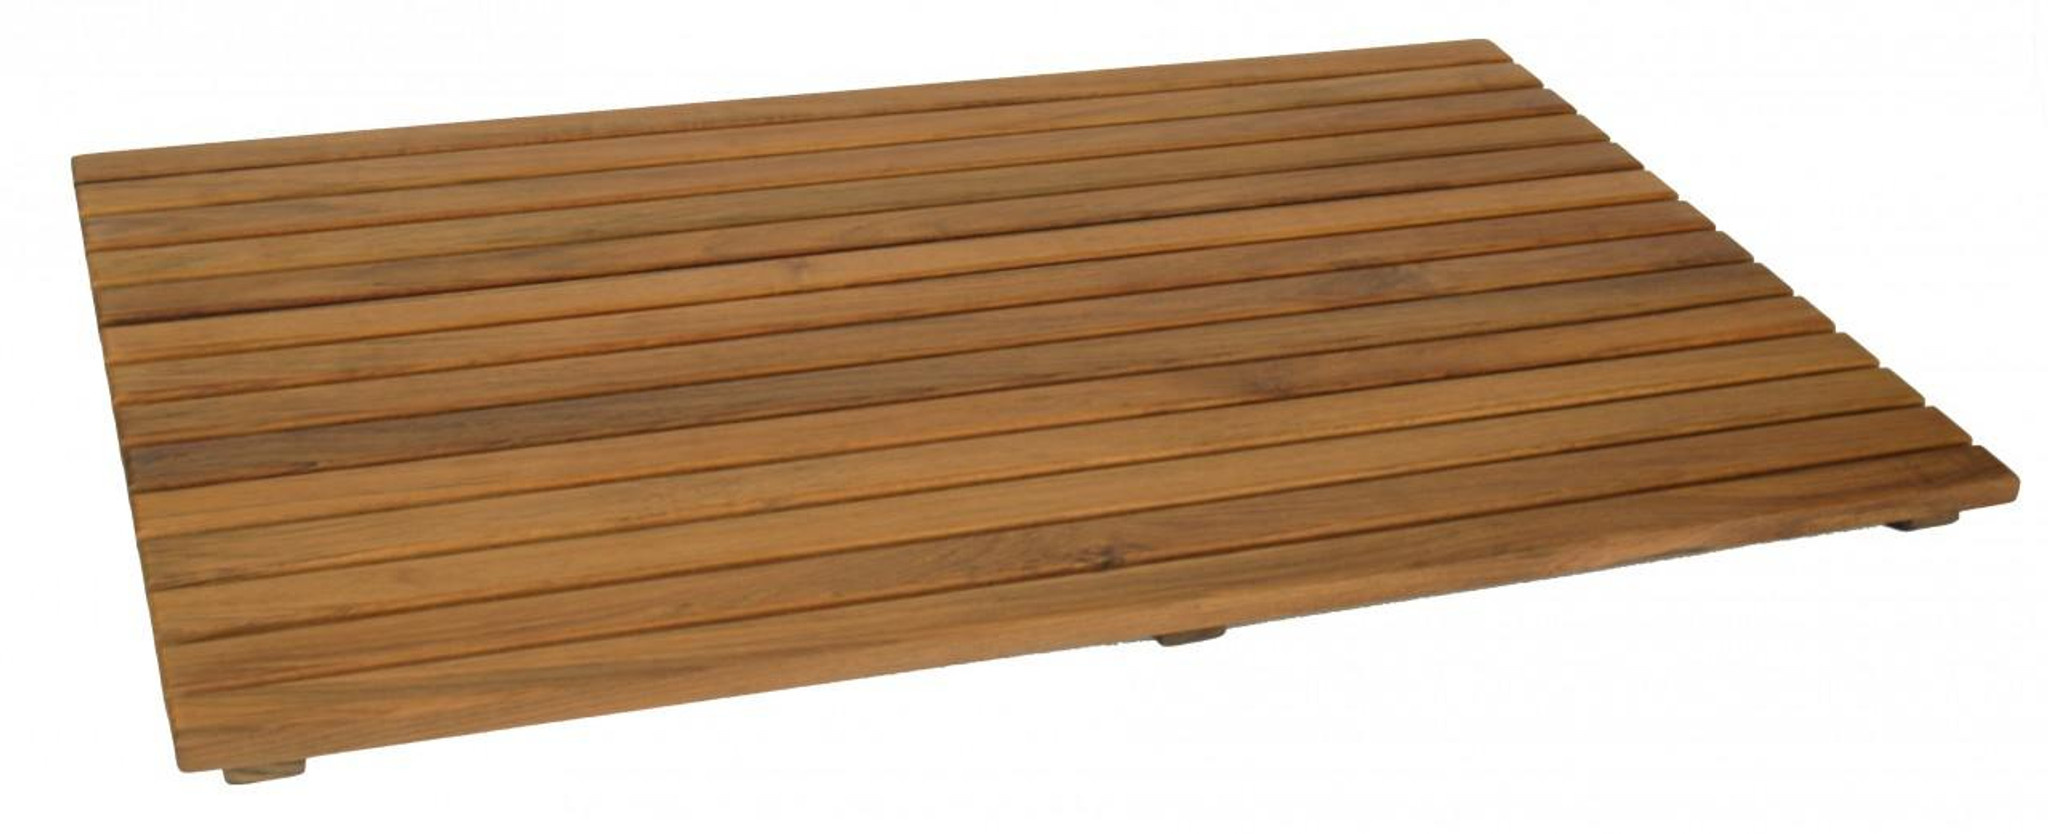 Buy Seateak Solid Teak Shower Spa Mats Oiled Finish At Water Brands